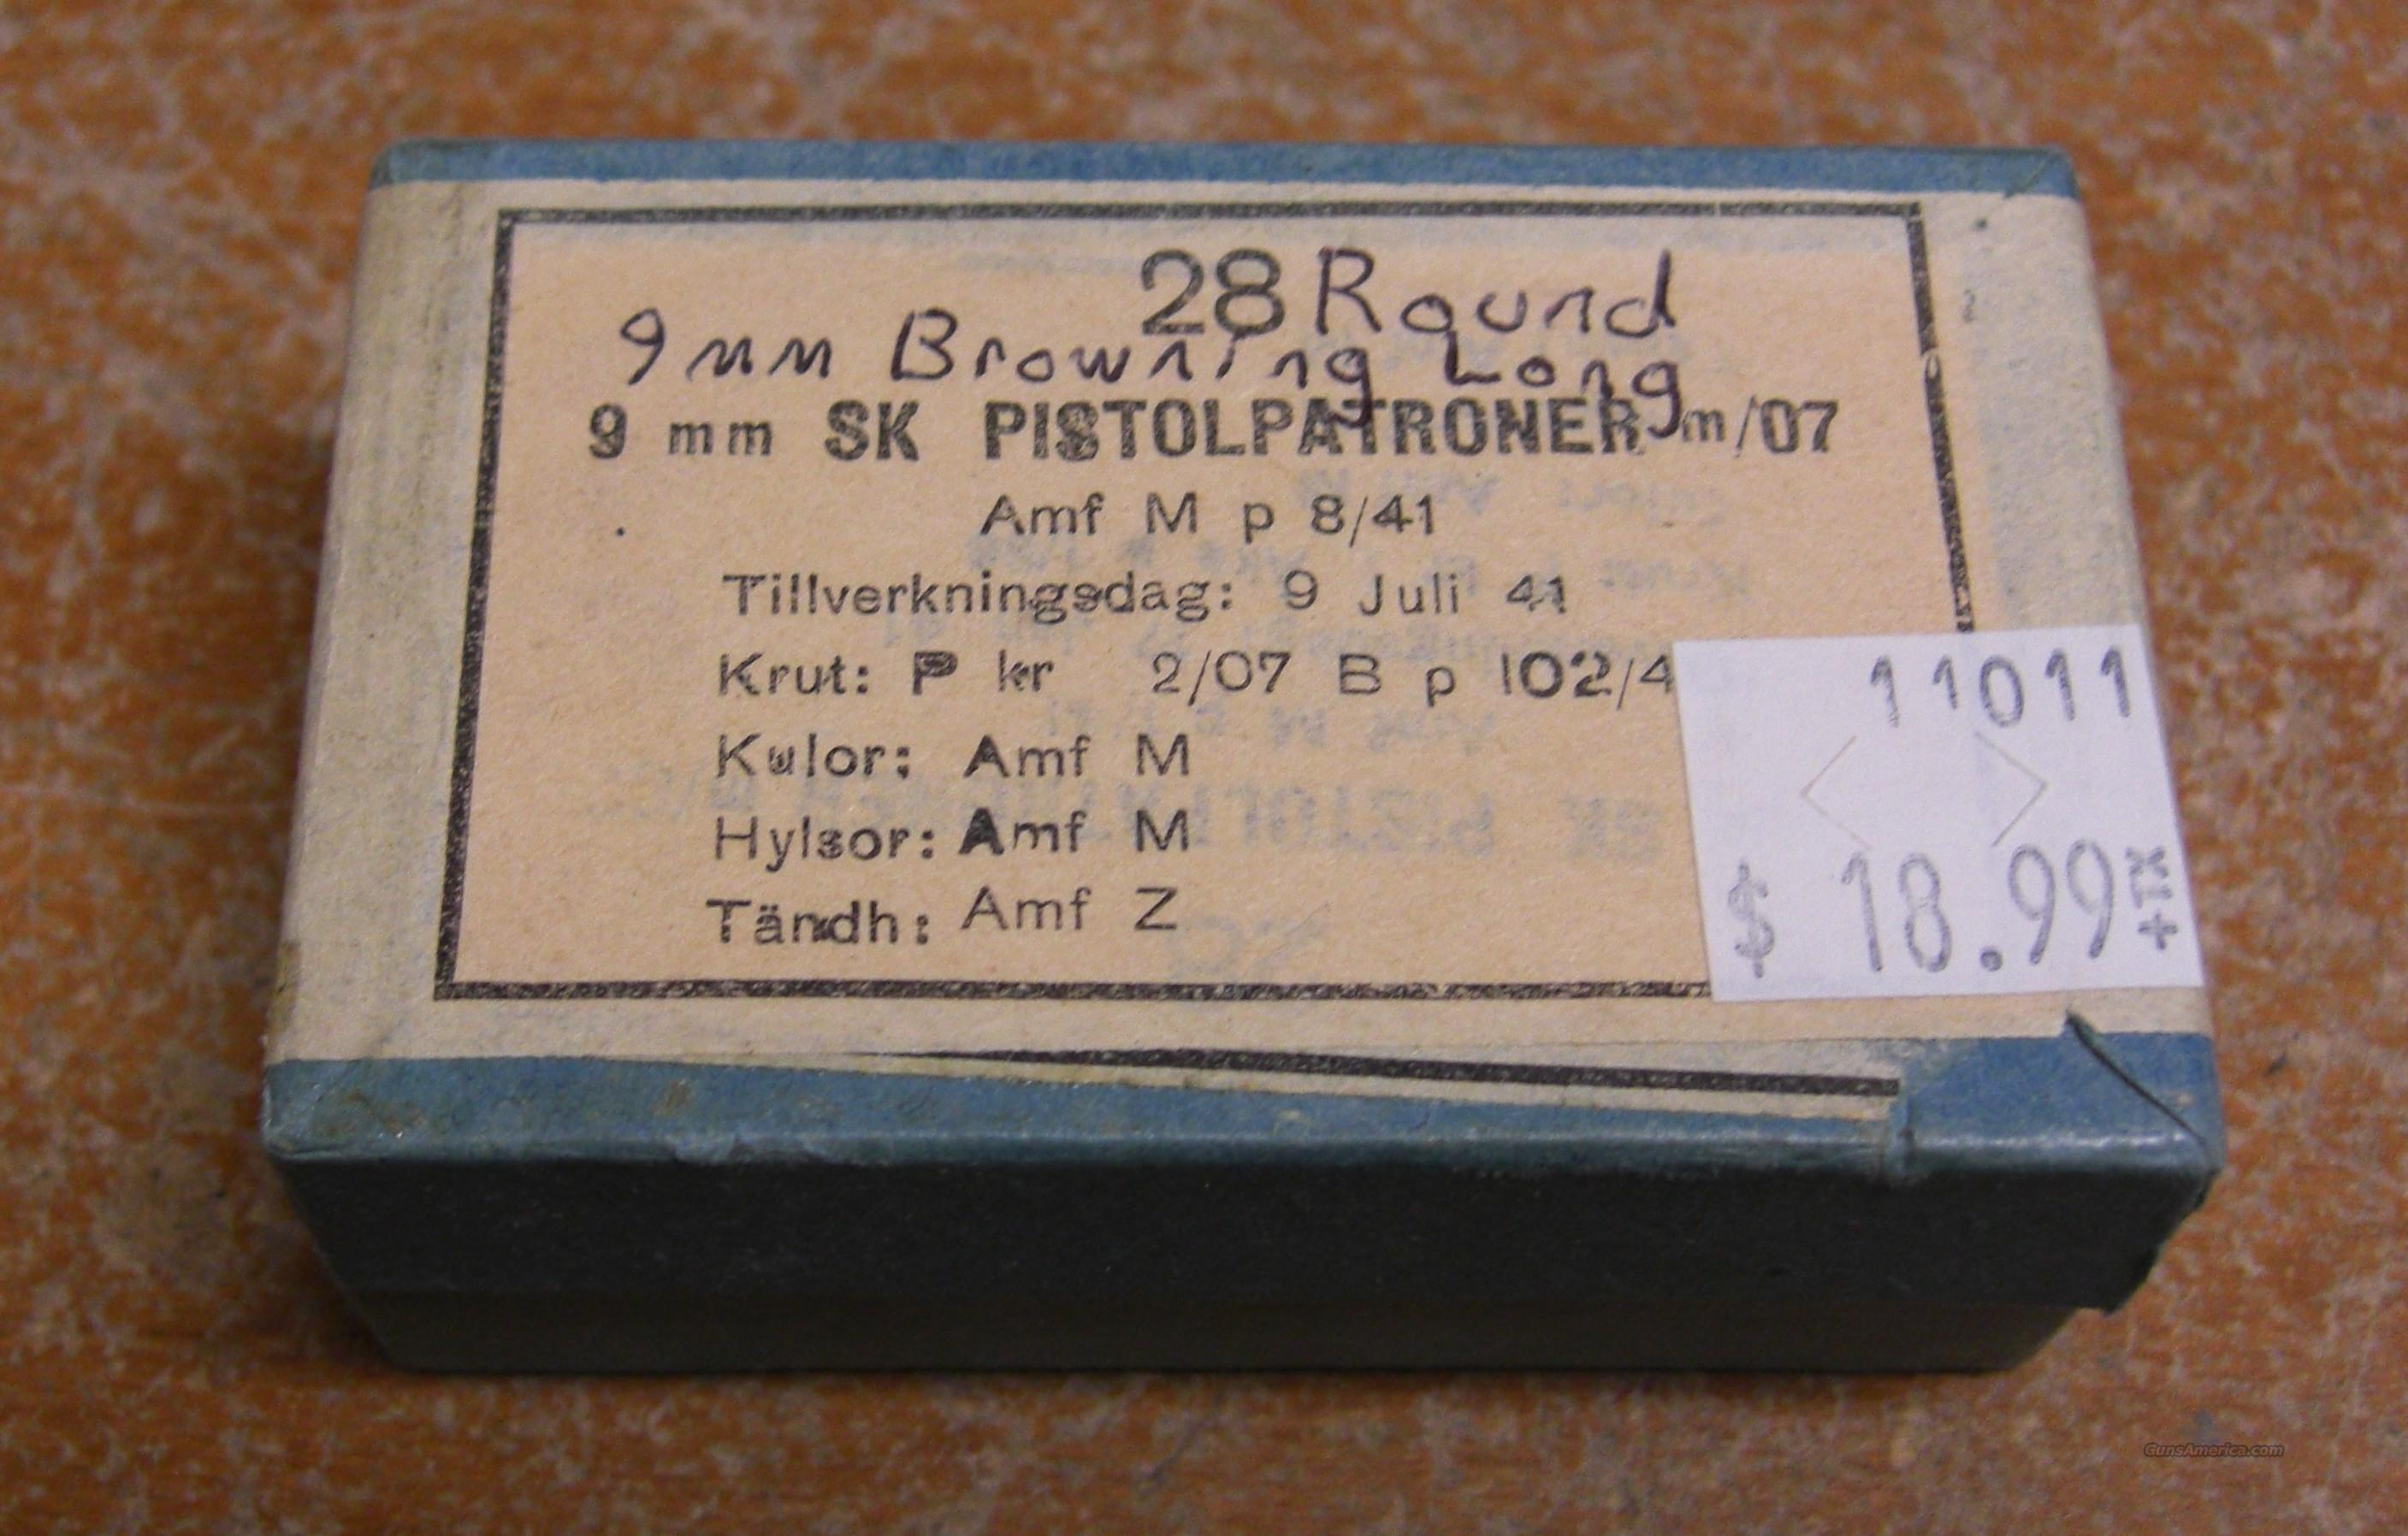 9mm Browning Long ammo  Non-Guns > Ammunition